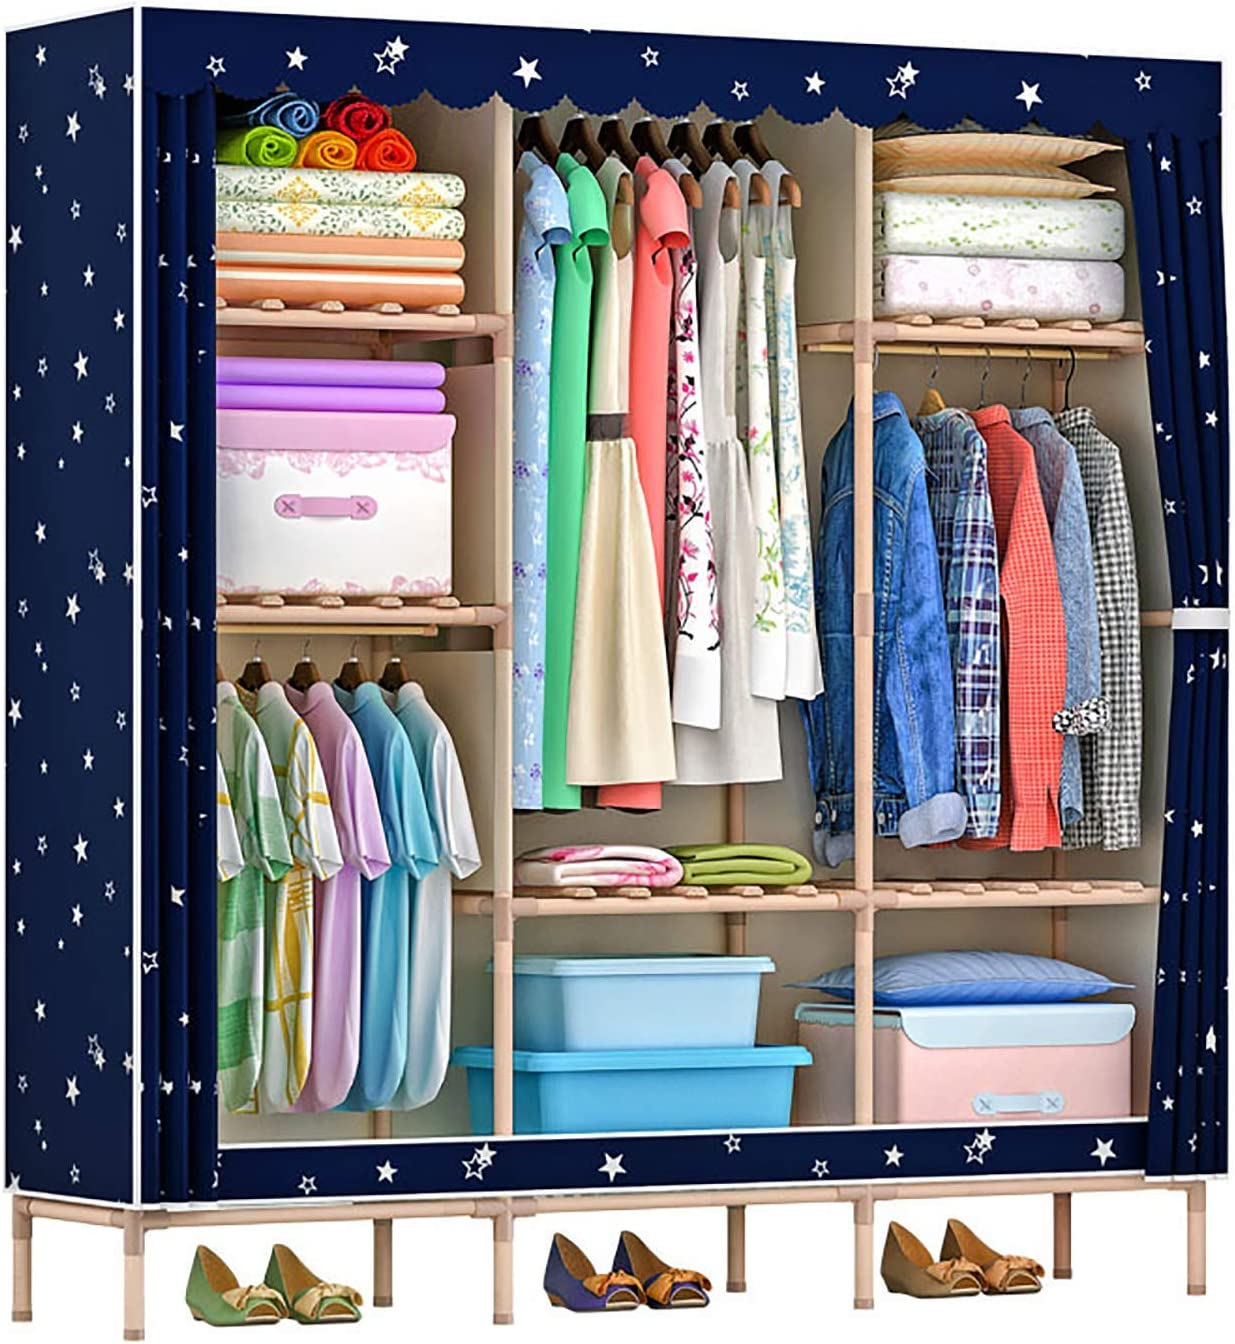 Amazon Com Bedroom Cloth Wardrobe Clothes Storage Closet Solid Wood Frame Hanging Clothes Organizer With Cover Extra Strong And Durable Clothes Closet Starry Sky 51x68 Inch Home Kitchen